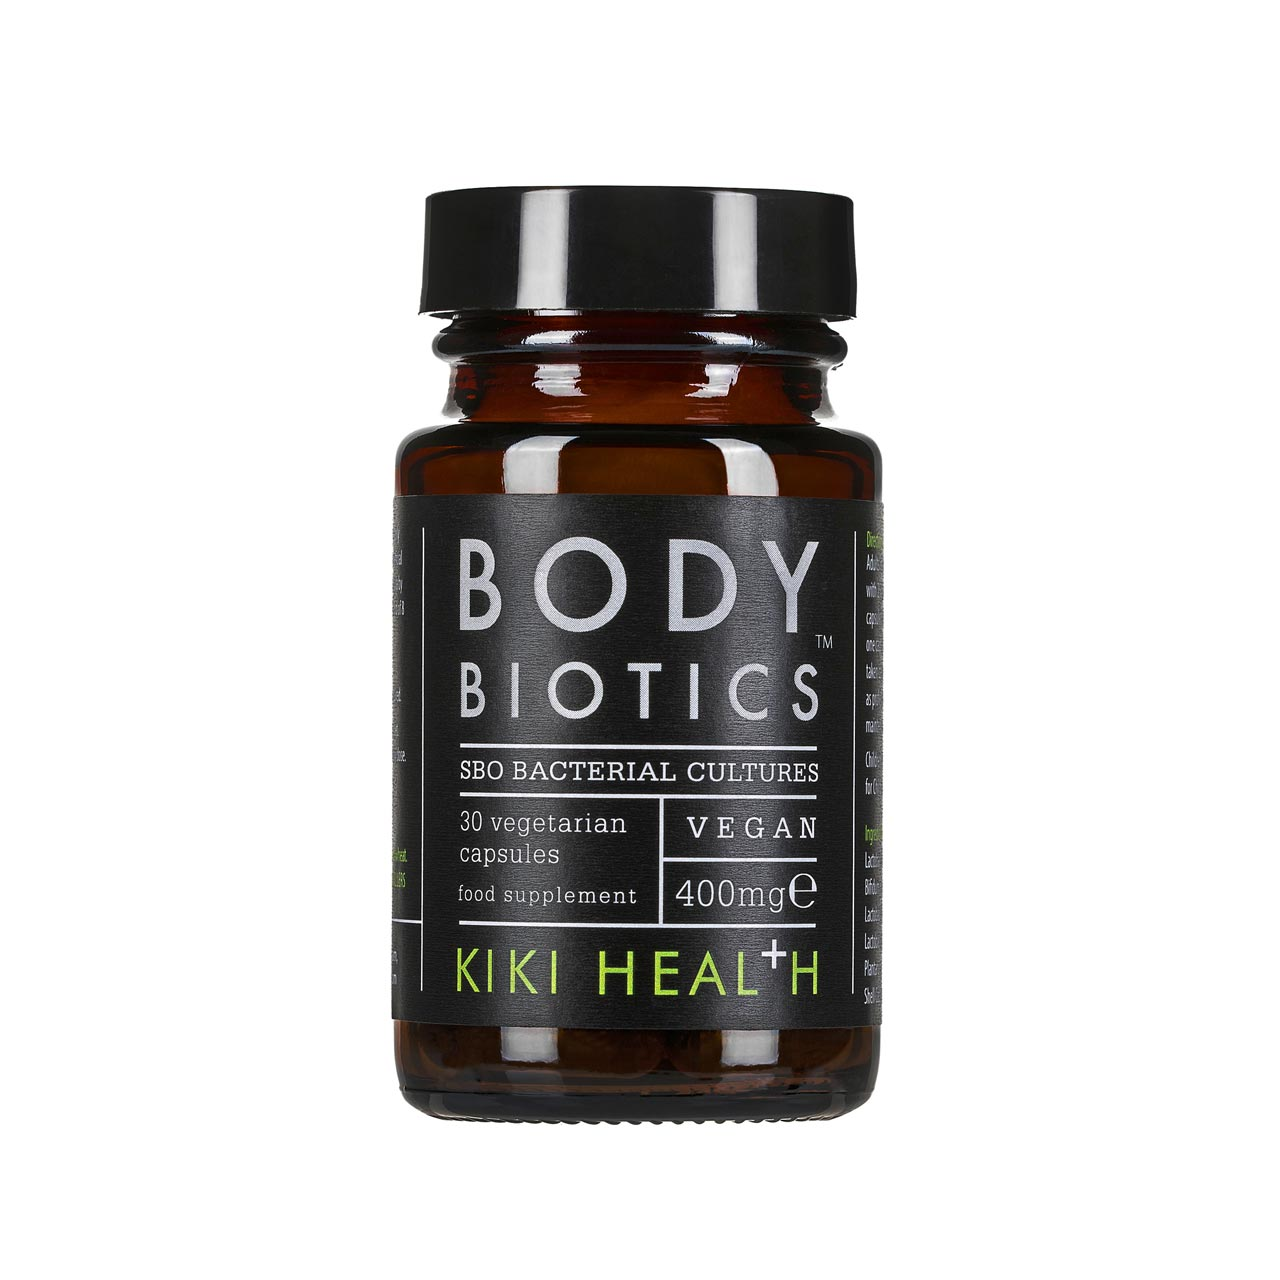 Body Biotics Kiki Health